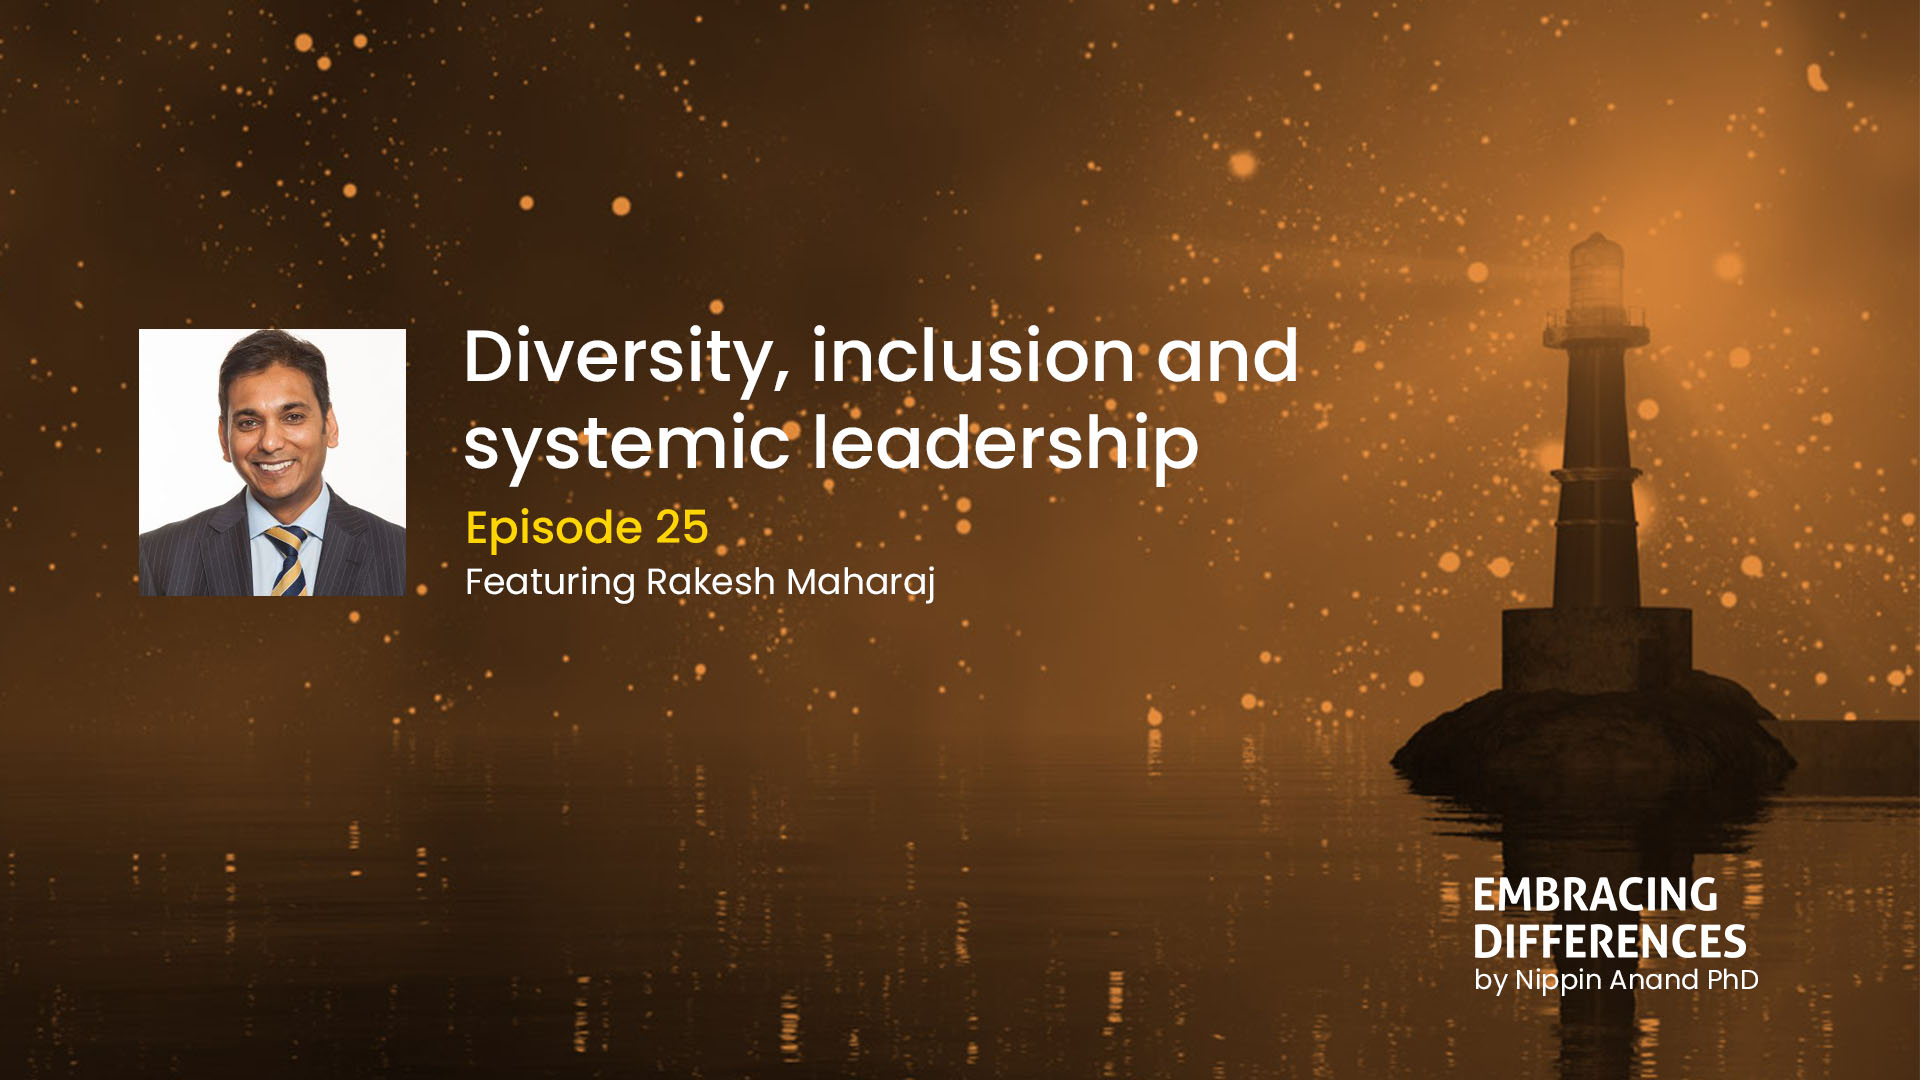 Diversity, inclusion and systemic leadership: A conversation with Rakesh Maharaj